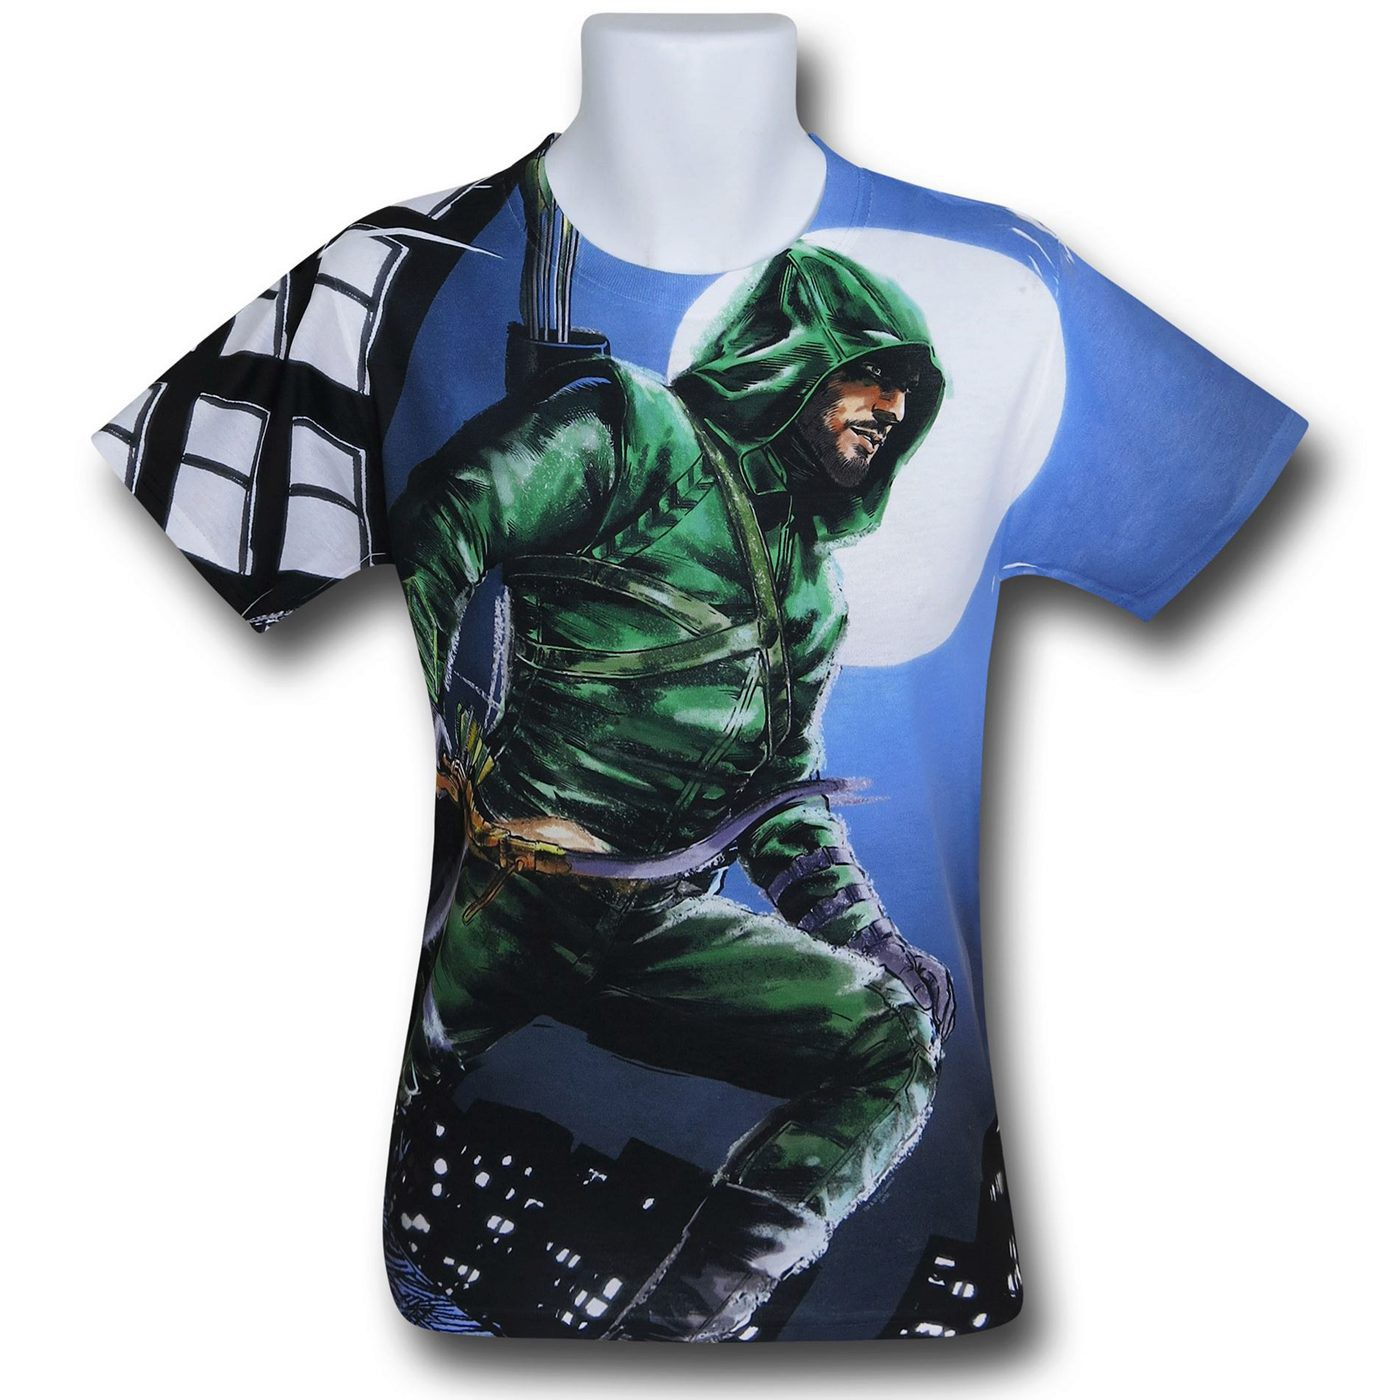 Green Arrow Nightwatch Sublimated T-Shirt